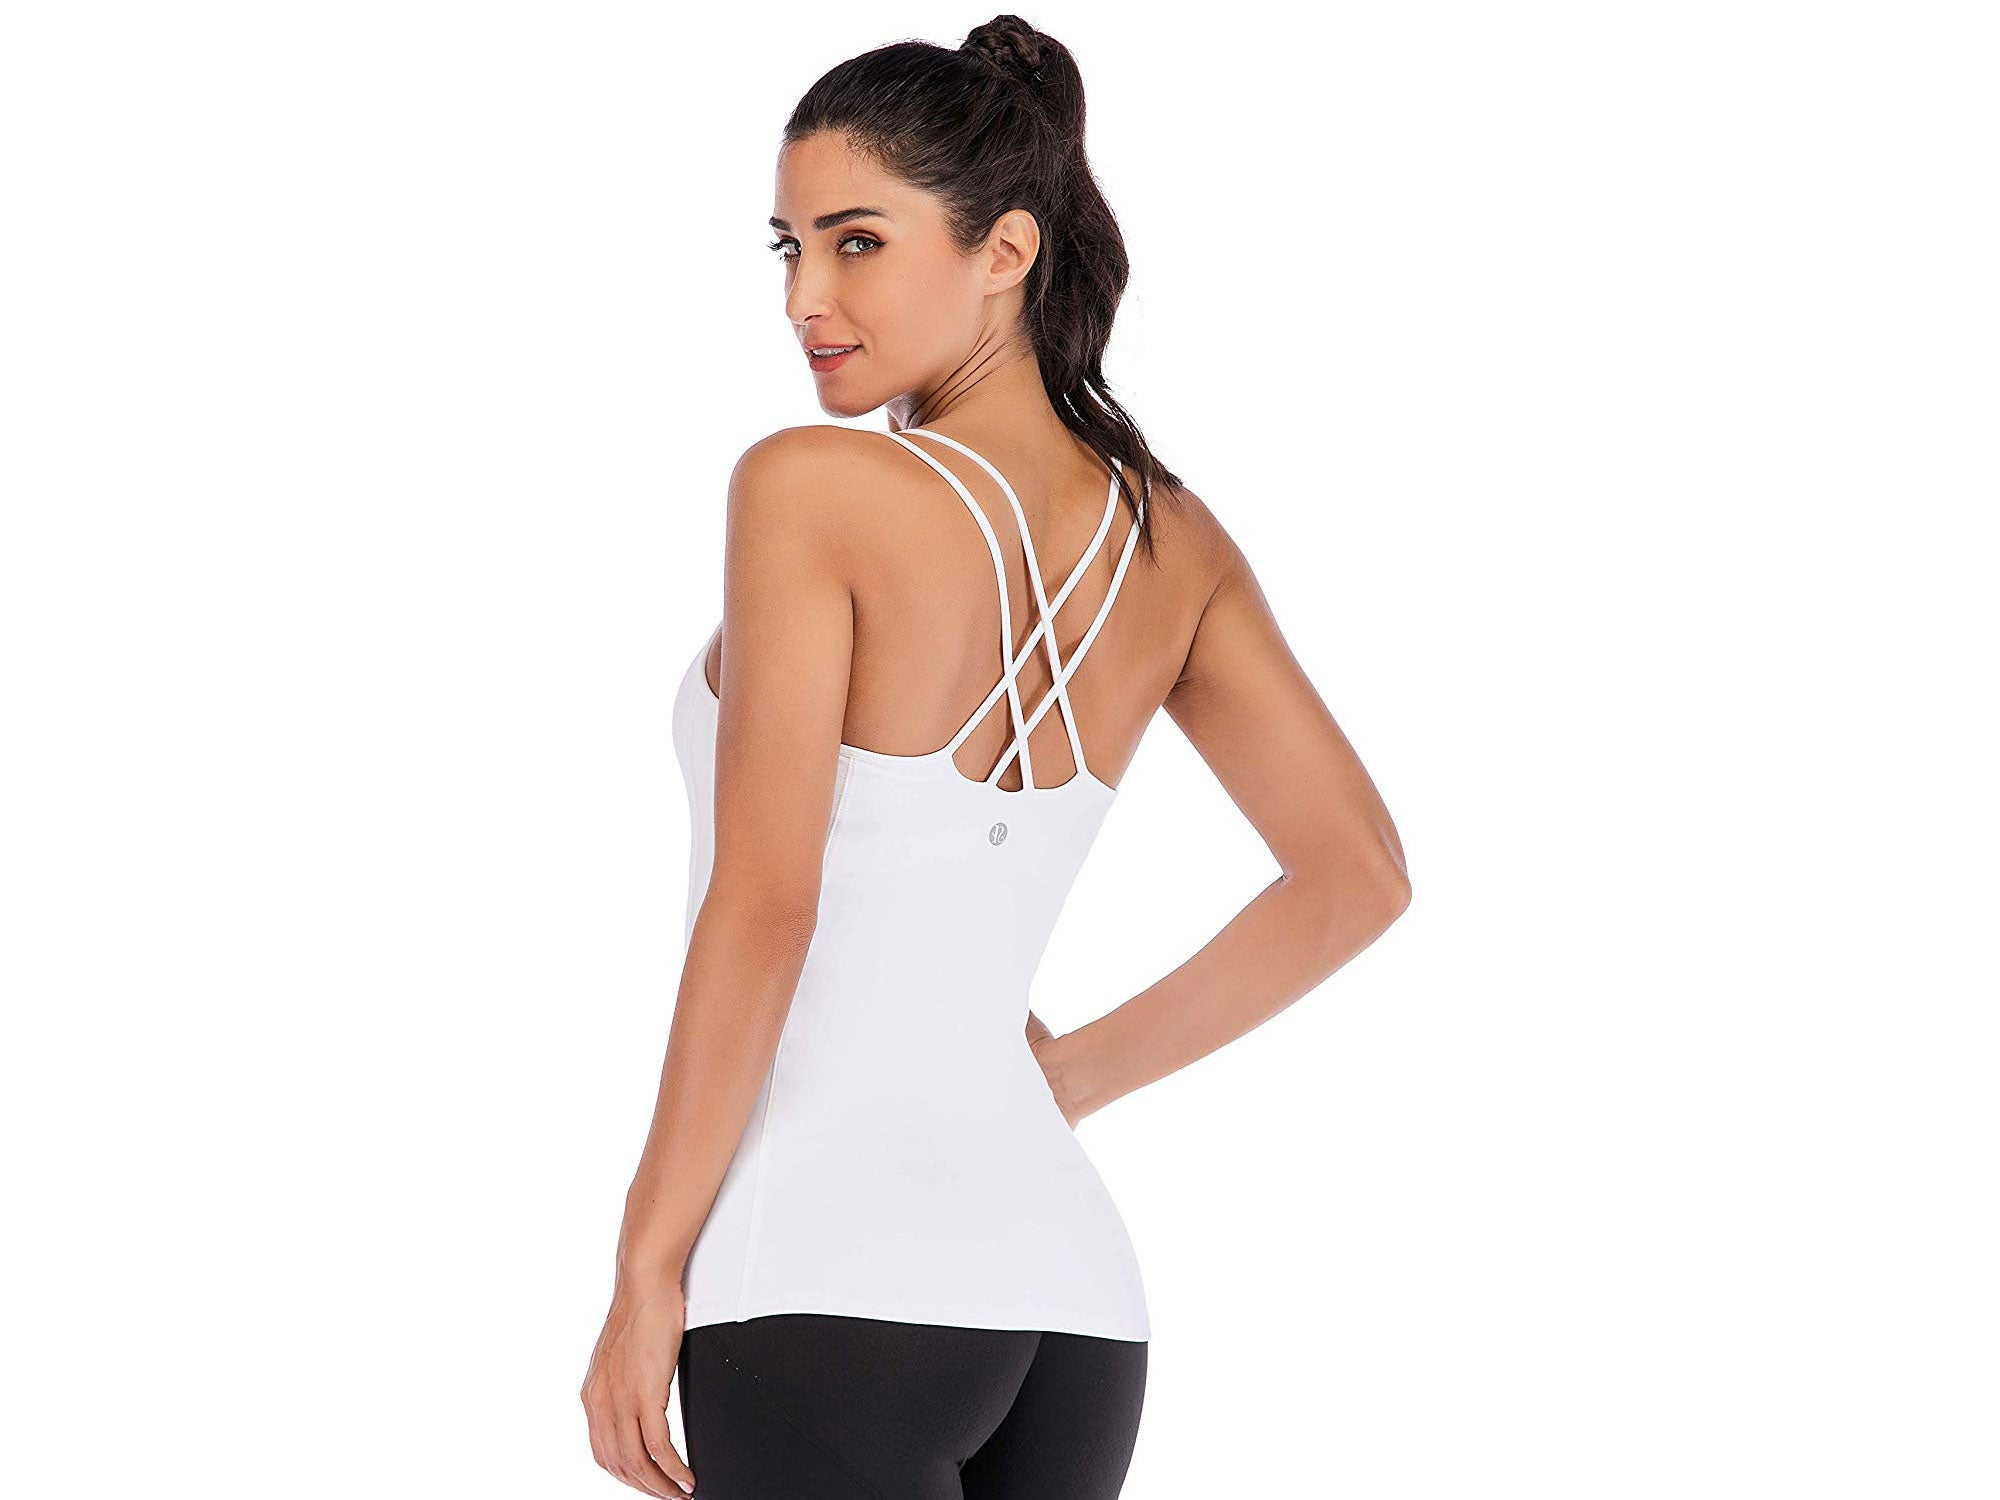 RUNNING GIRL Yoga Tank Tops for Women Built in Shelf Bra B/C Cups Strappy Back Activewear Workout Compression Tops